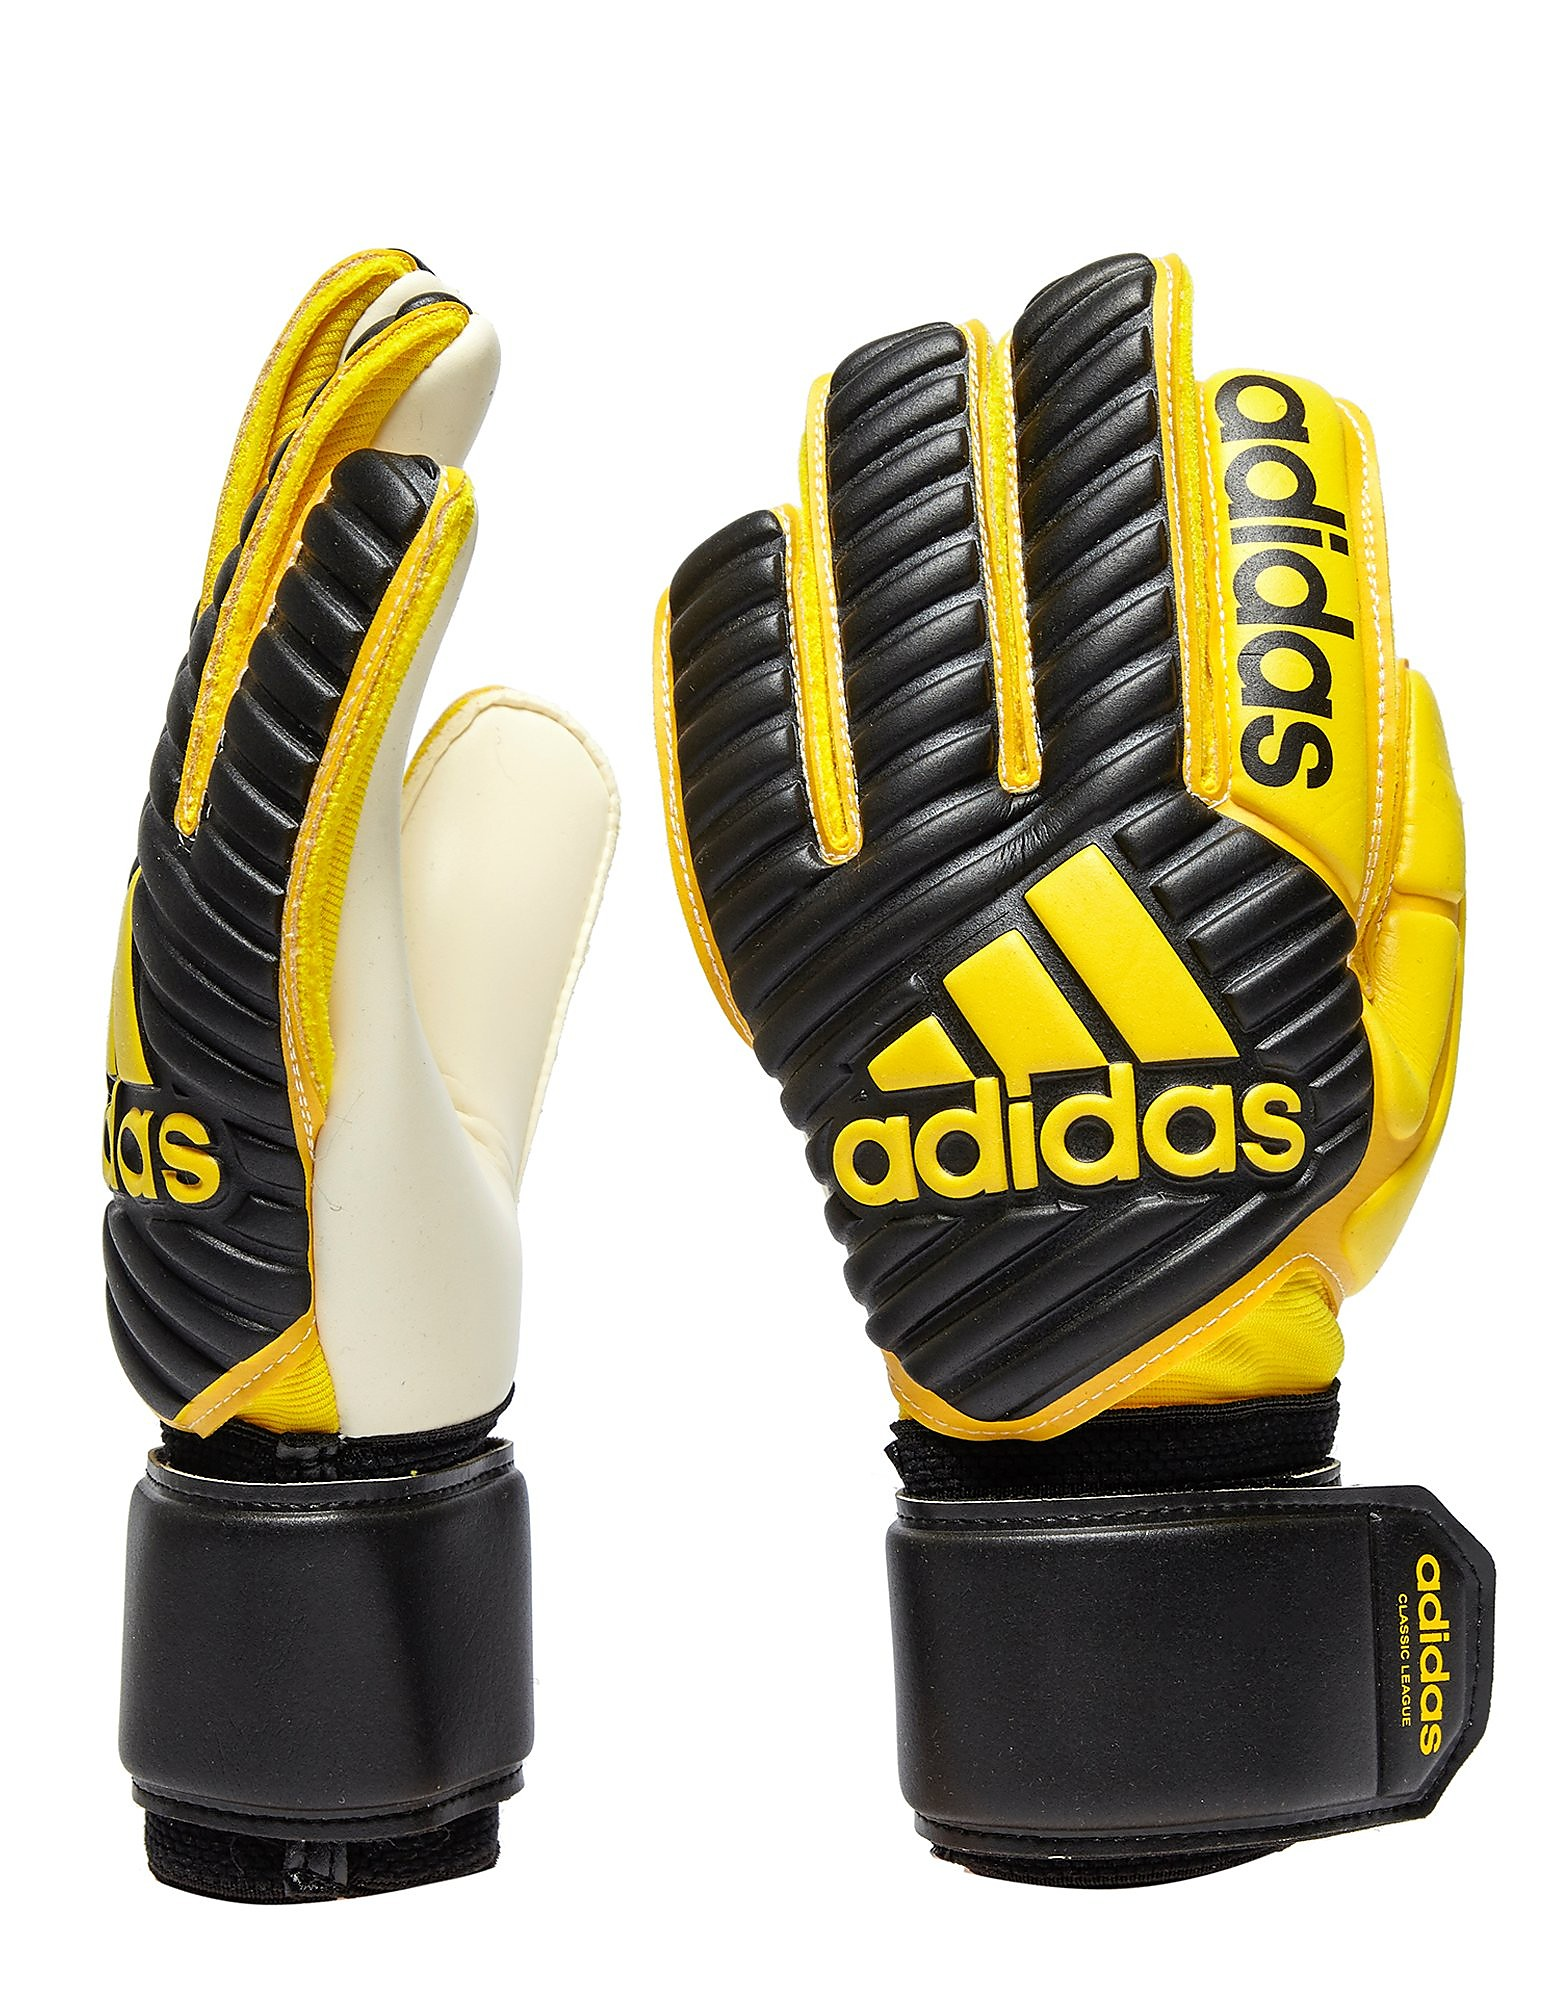 adidas Gants de Gardien de but adidas Classic League